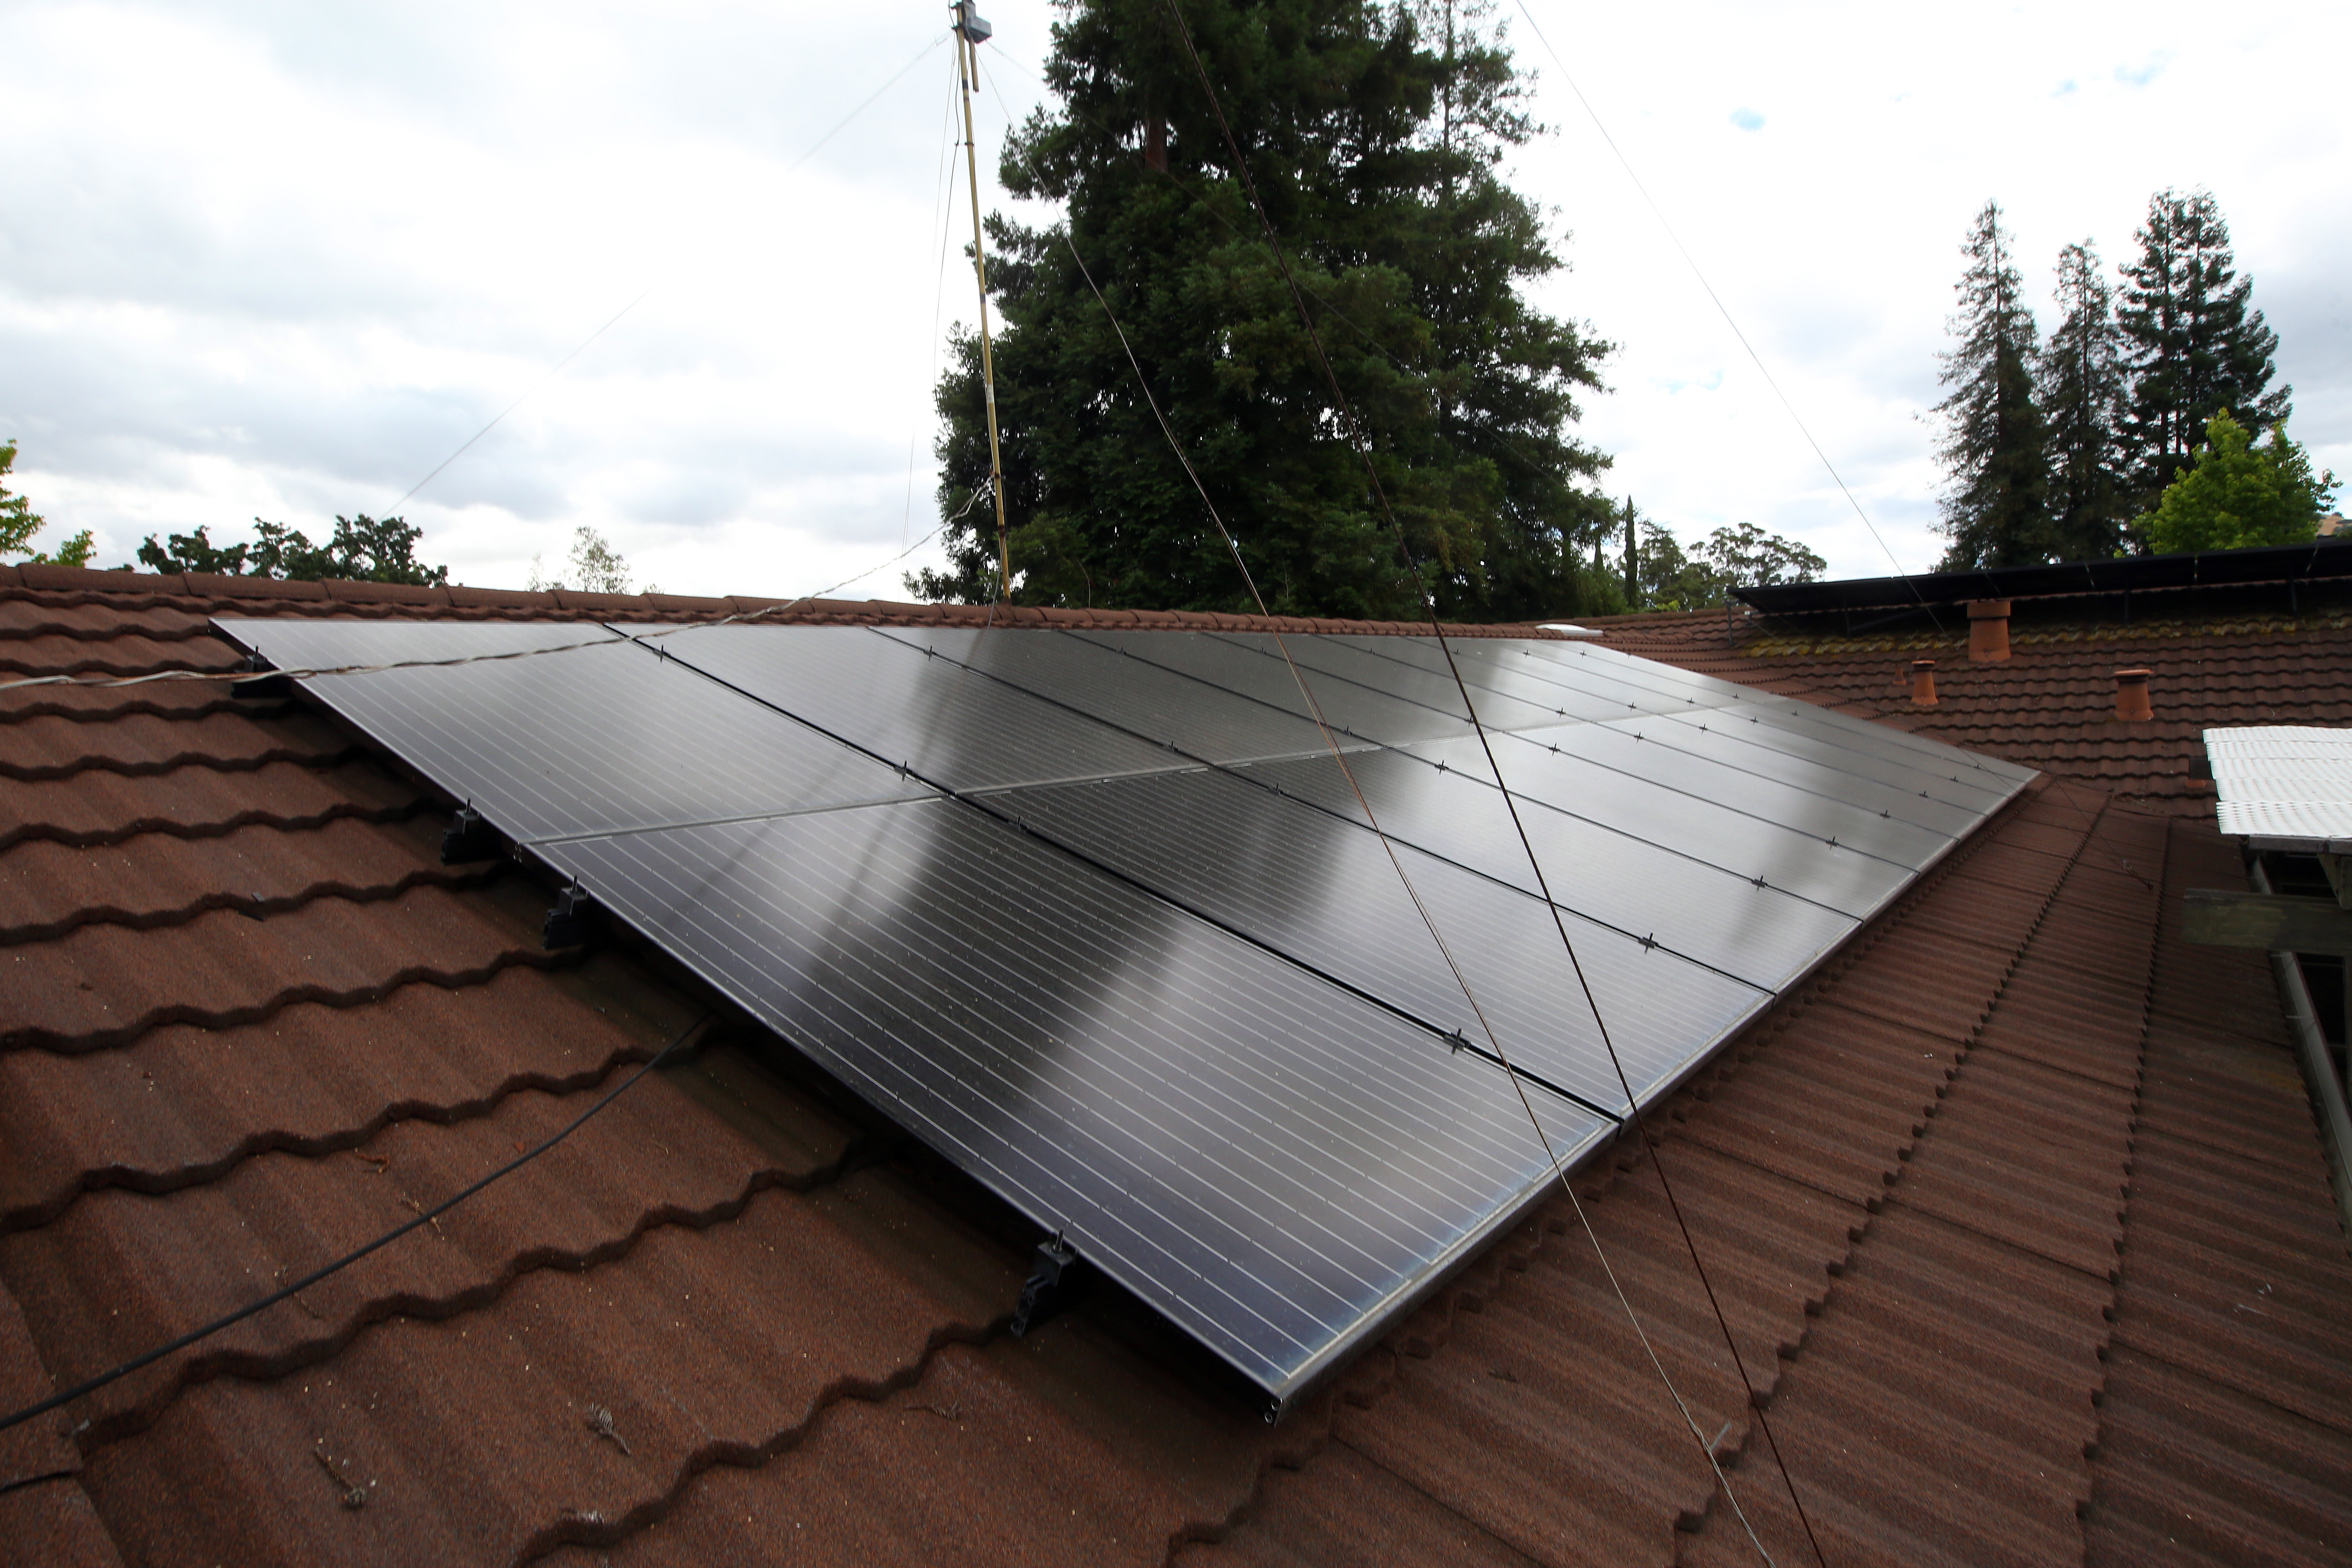 Solar panels on the roof of a home, in Lafayette, Calif. (Jim Wilson/New York Times file photo)